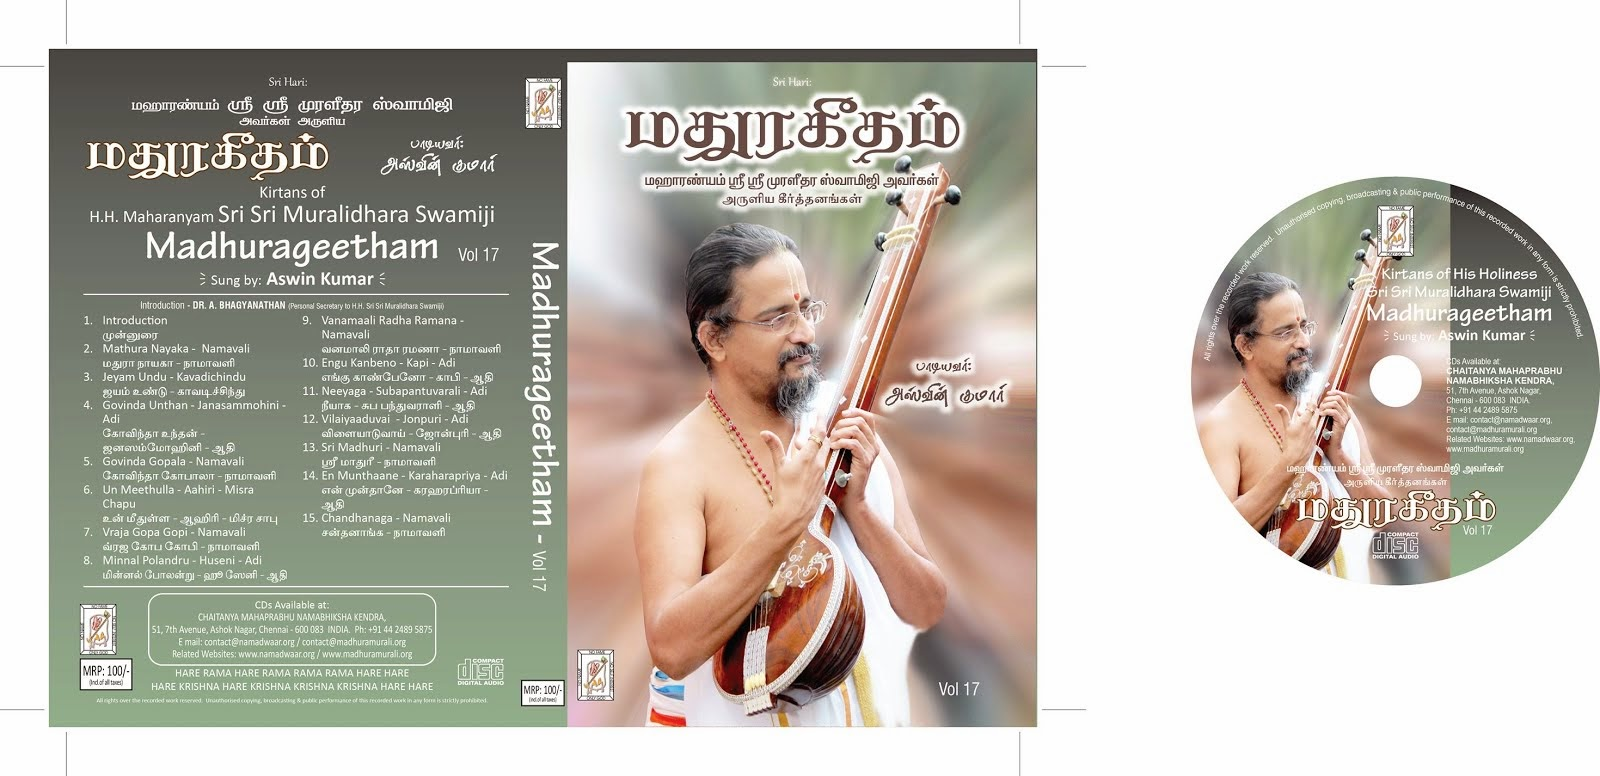 Madhurageetham Vol 17 - New release - Available